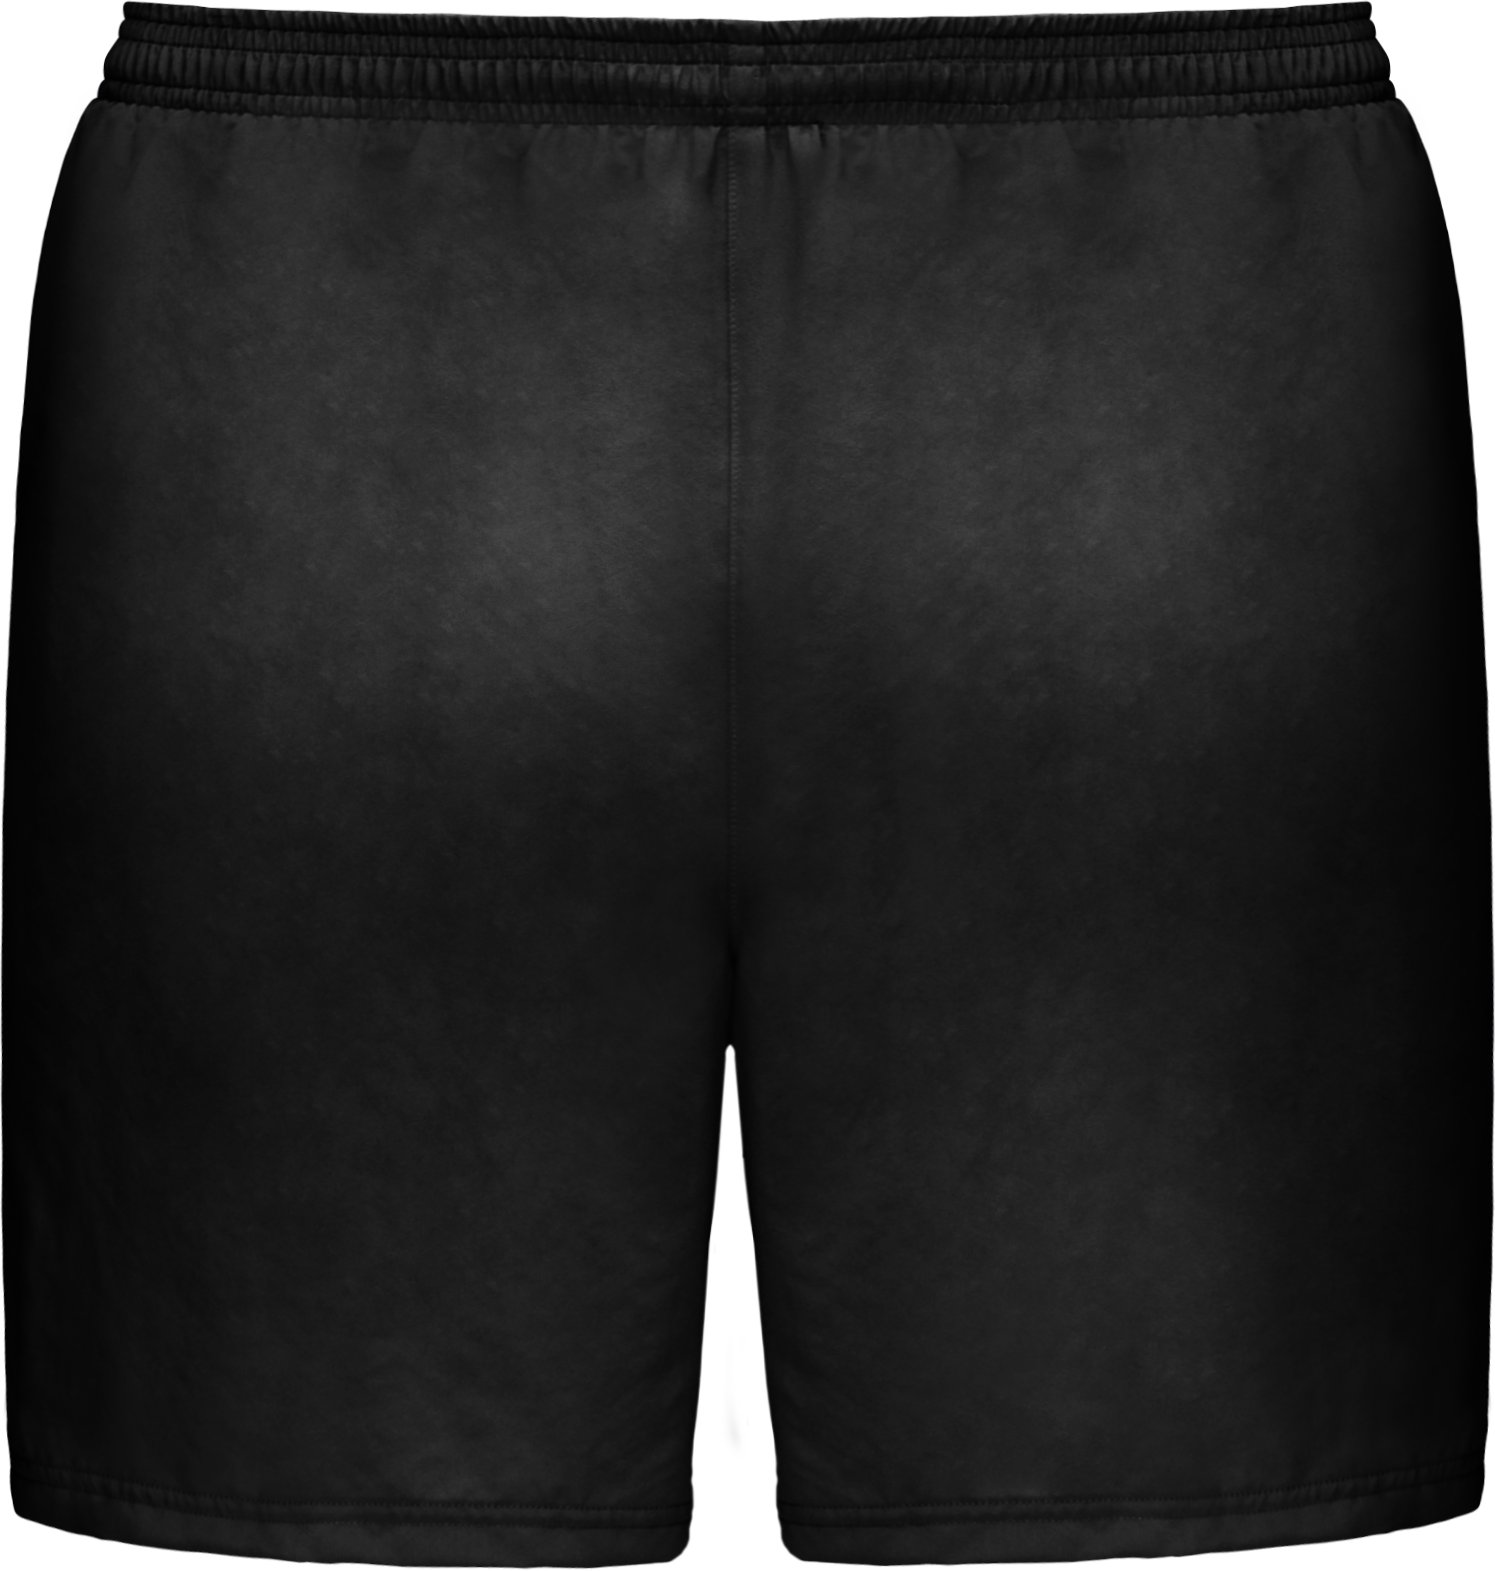 "Men's 7"" Escape II Shorts, Black , undefined"